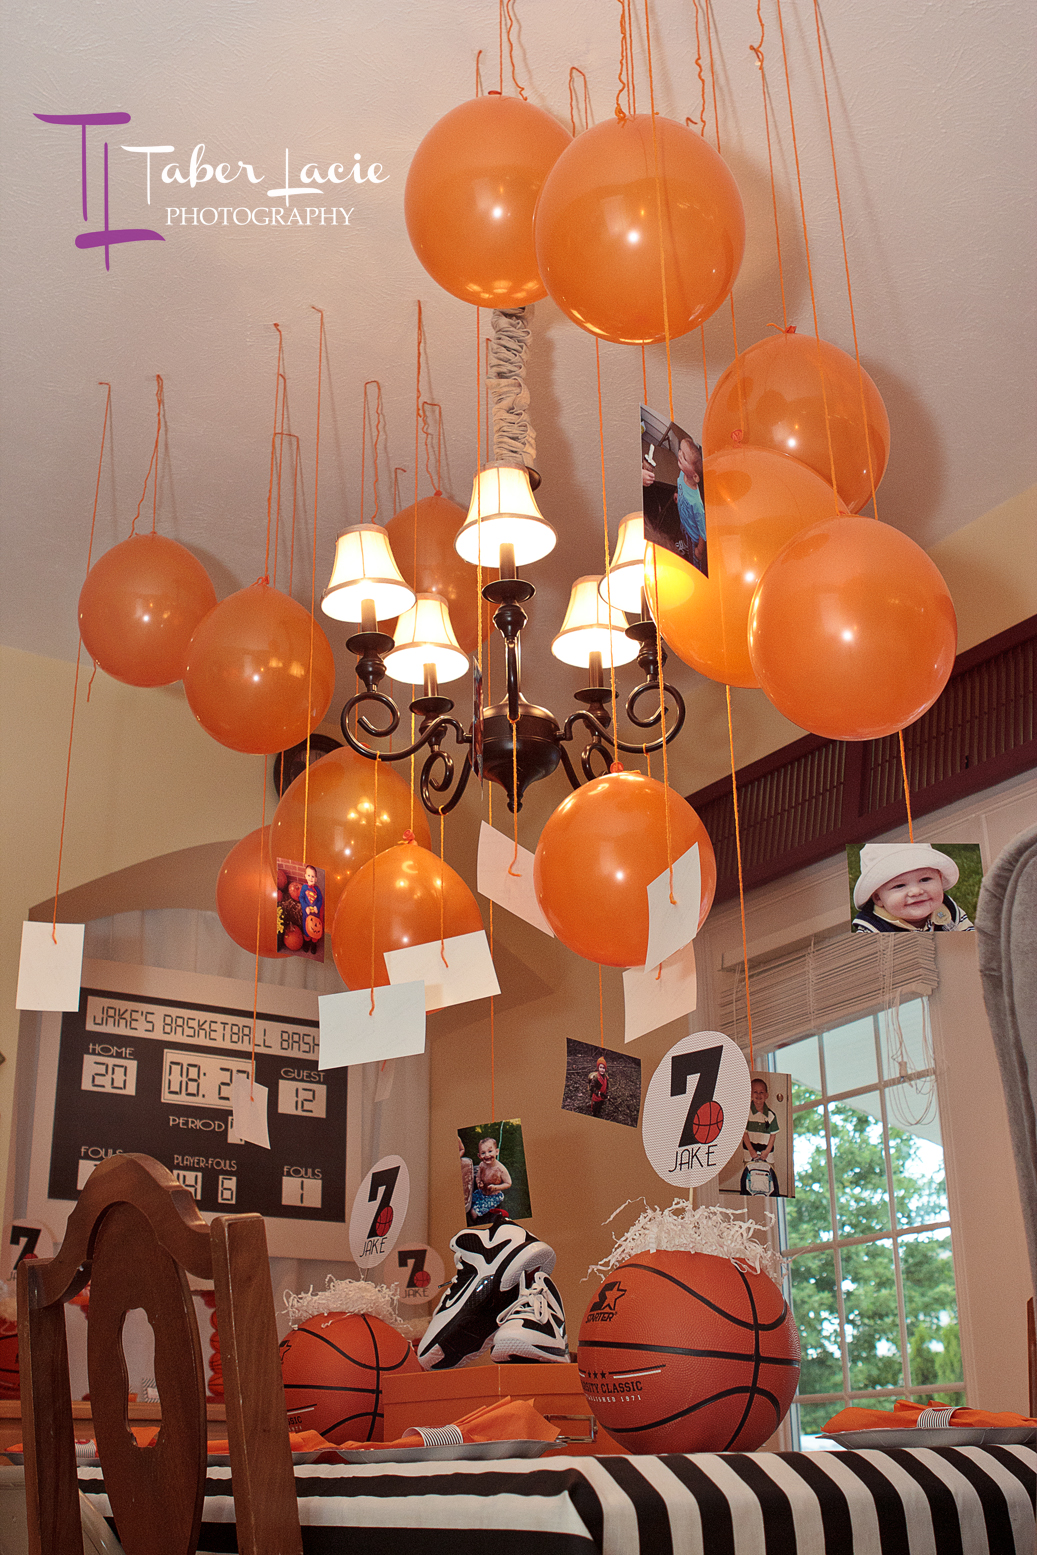 Basketball Theme Party Pictures To Pin On Pinterest